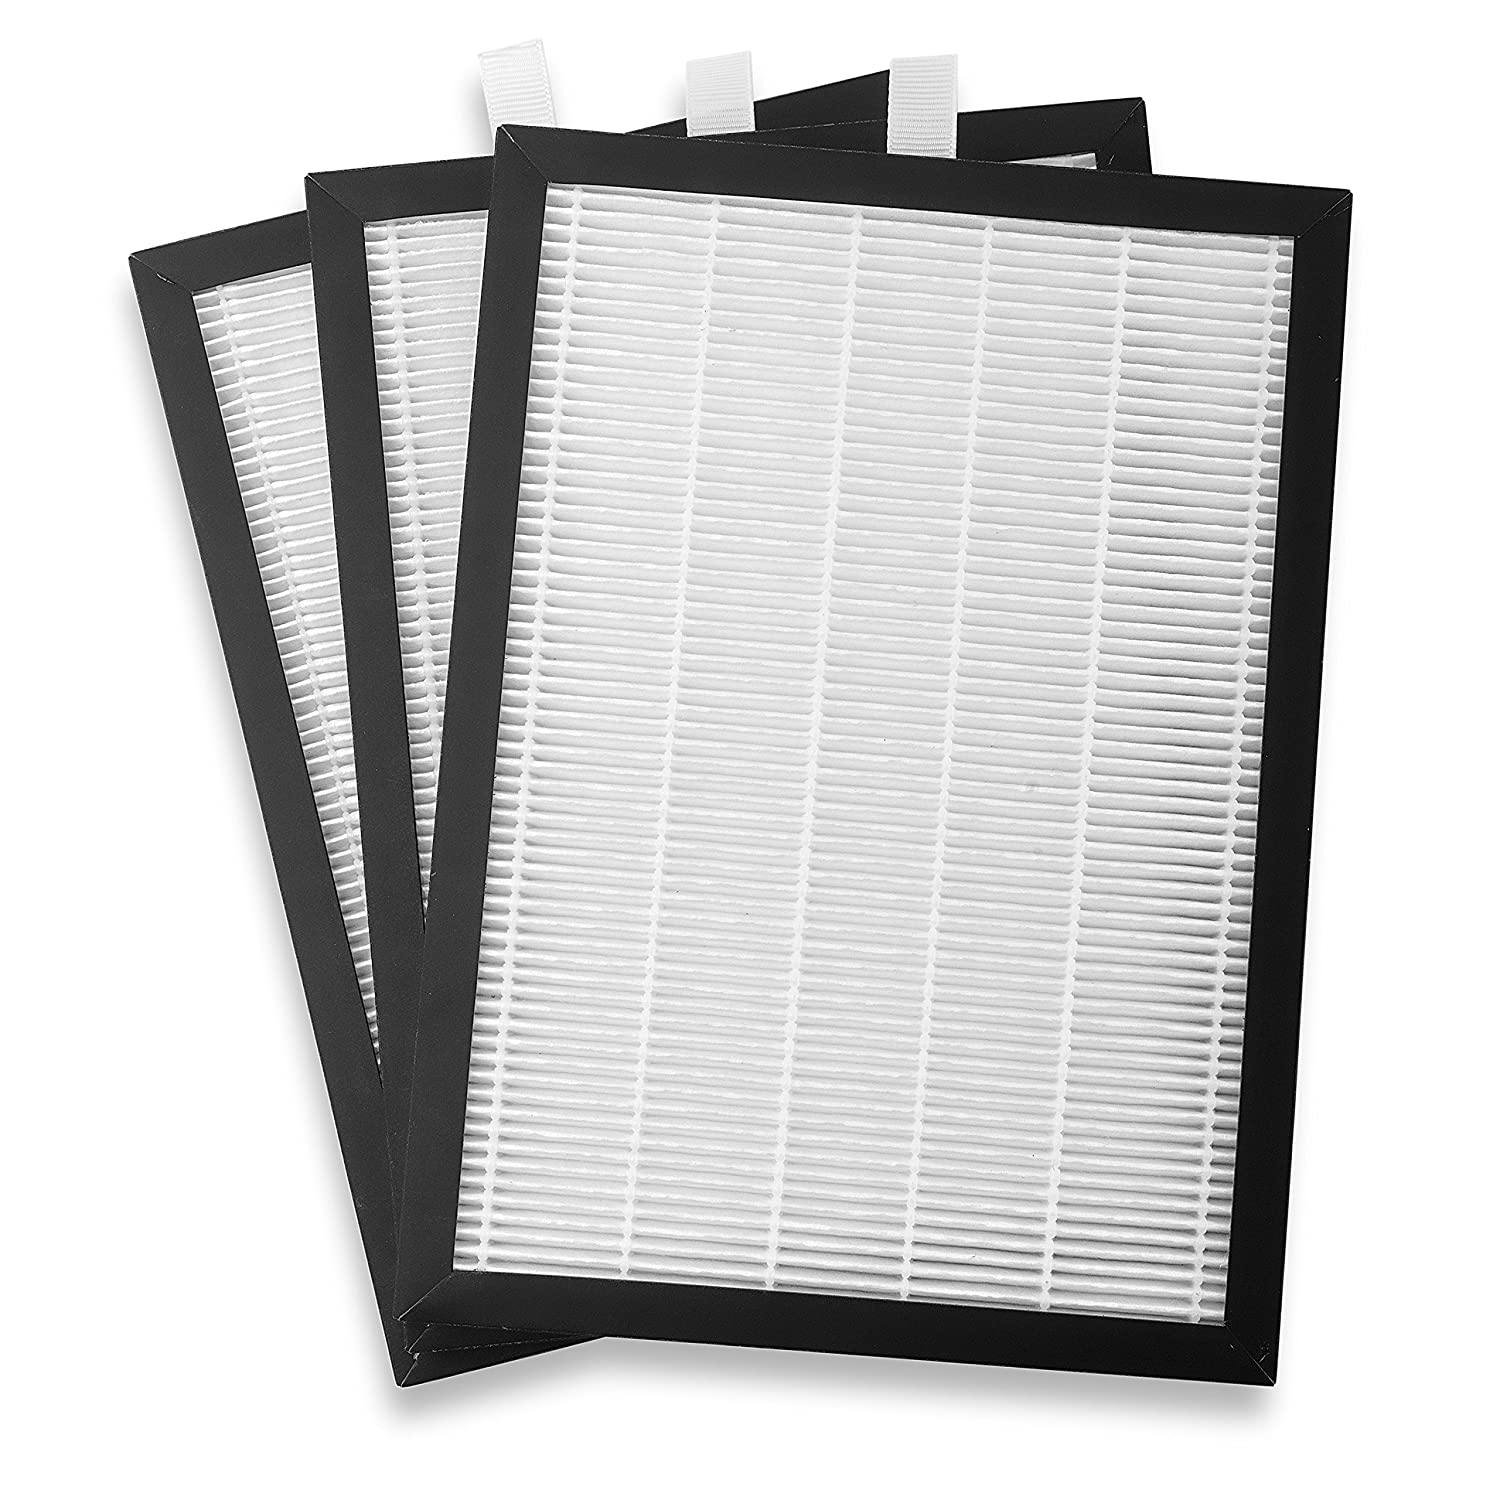 Meaco HEPA Filter for 12 Litre Low Energy Dehumidifier, White/Black HEPA Filter für 12 L